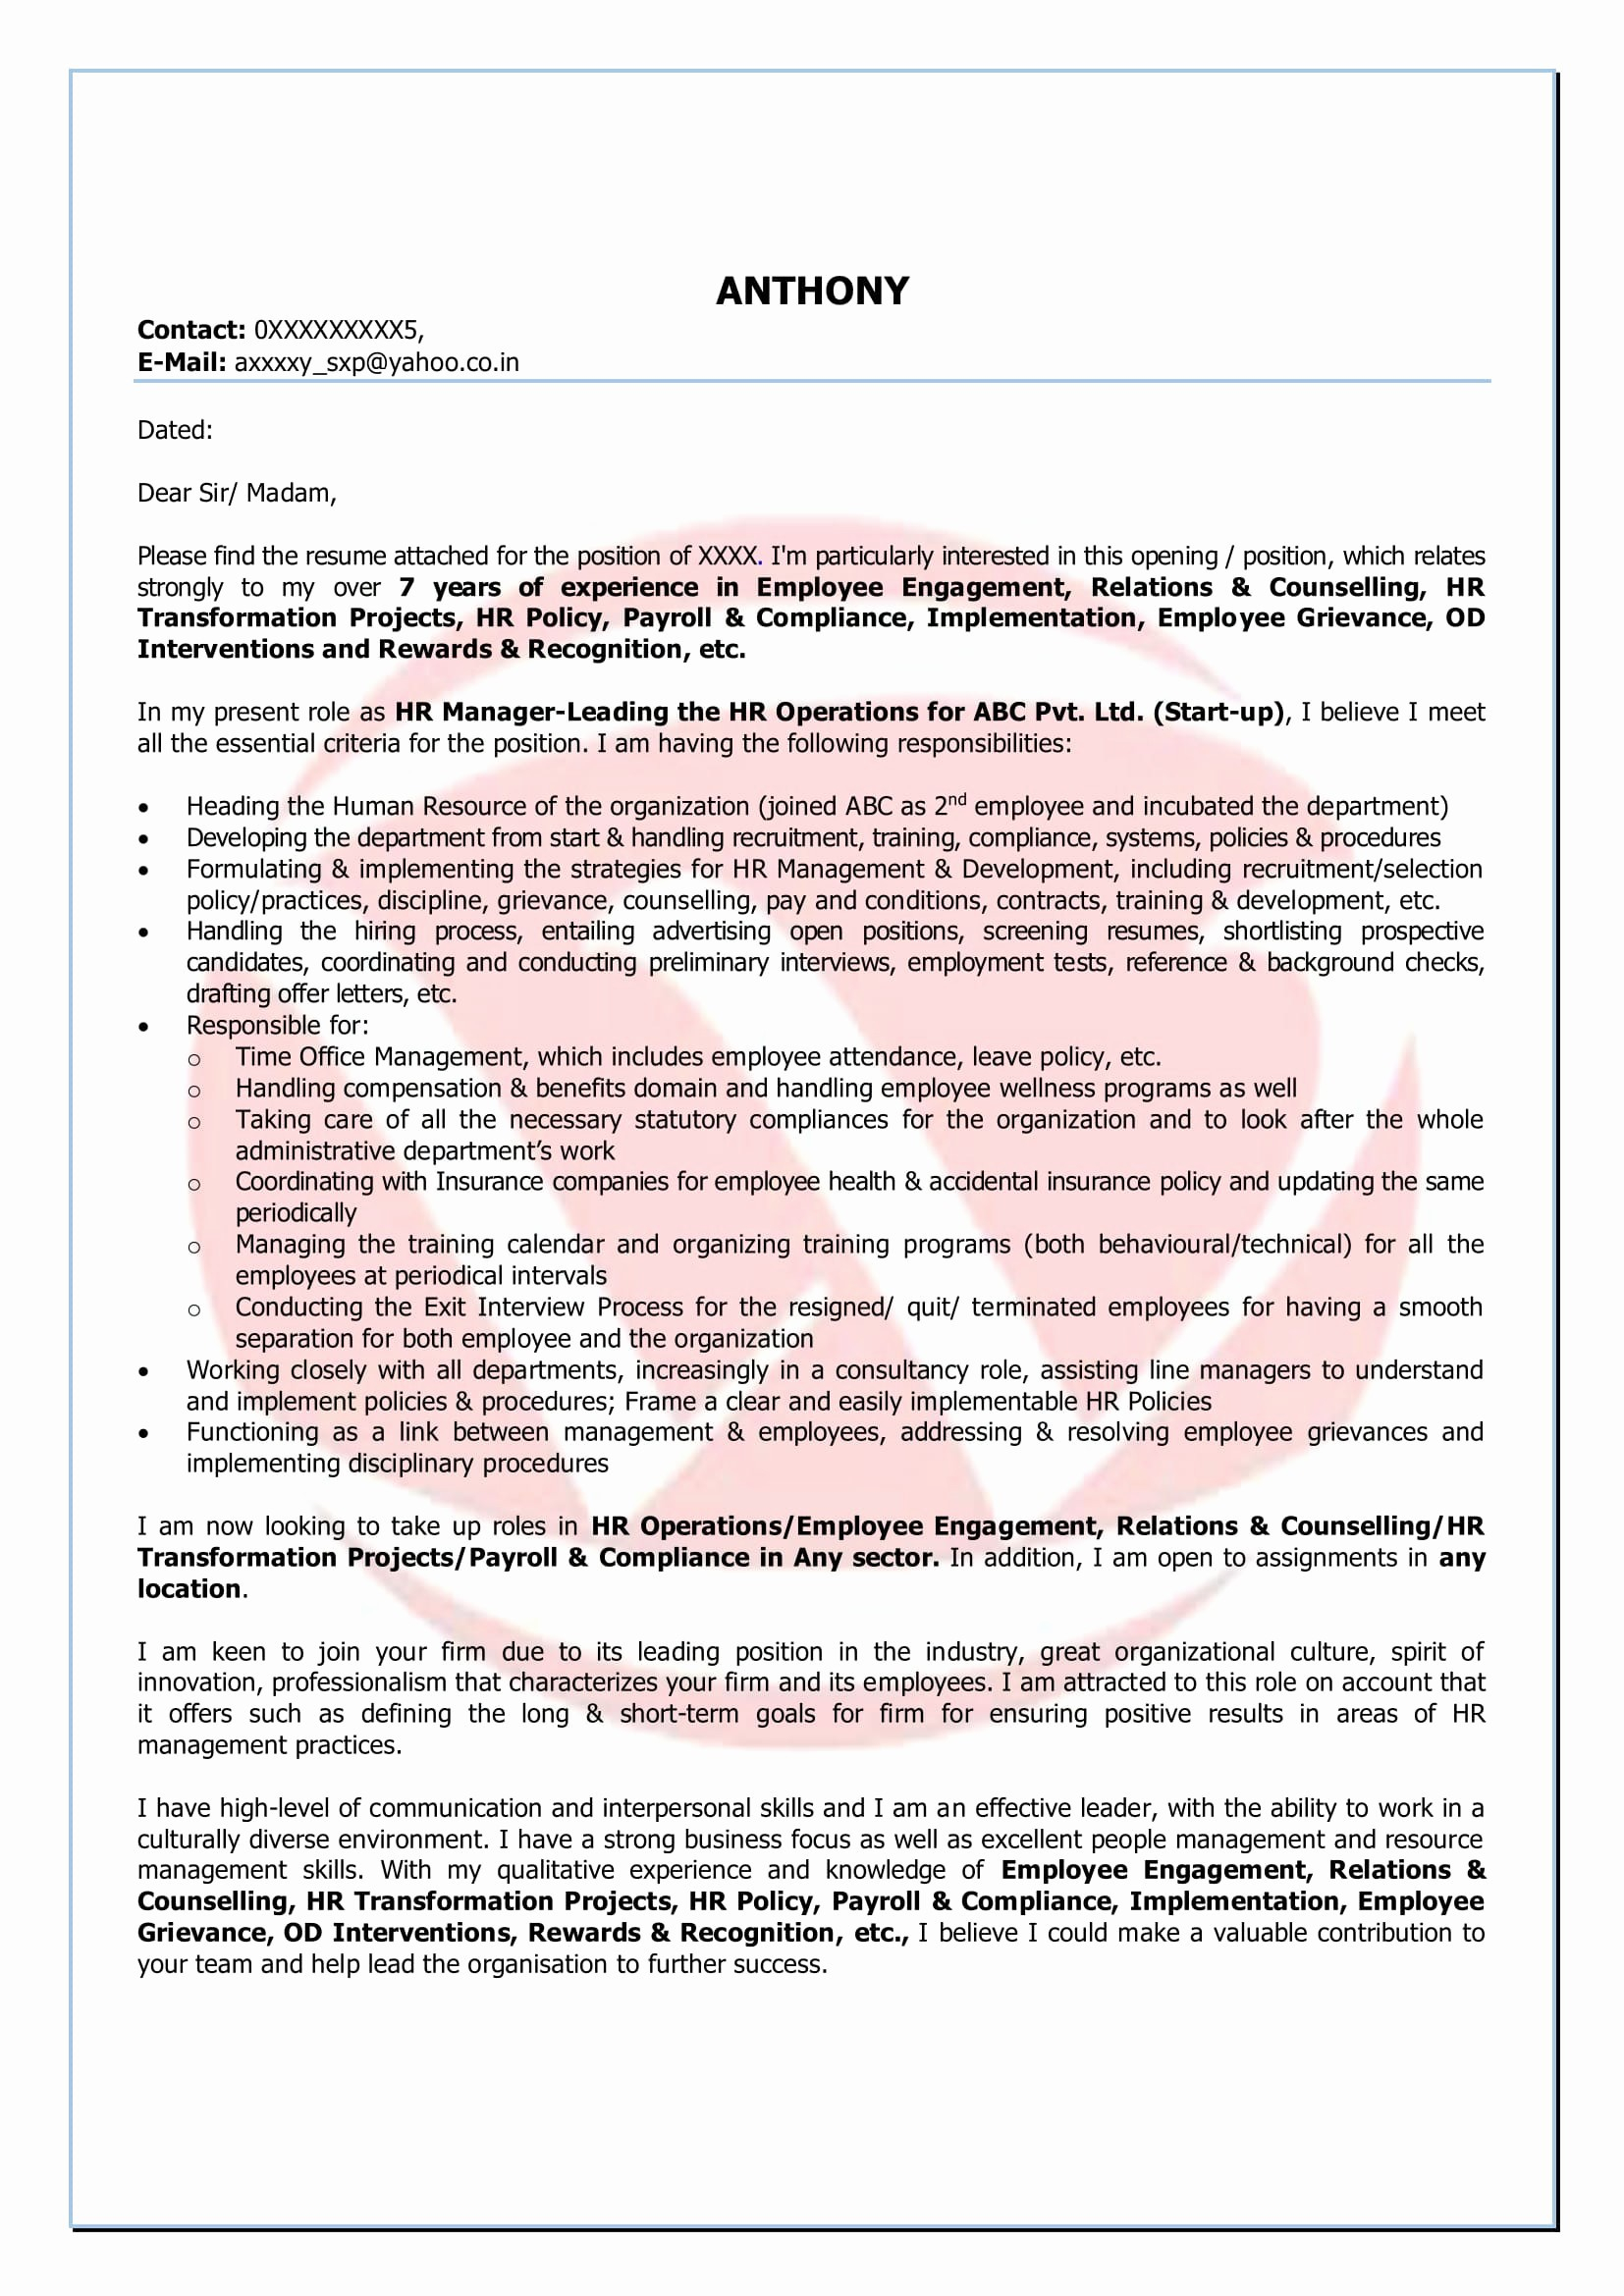 Offer Letter Template Google Docs - Inspirational Google Docs Screenplay Template